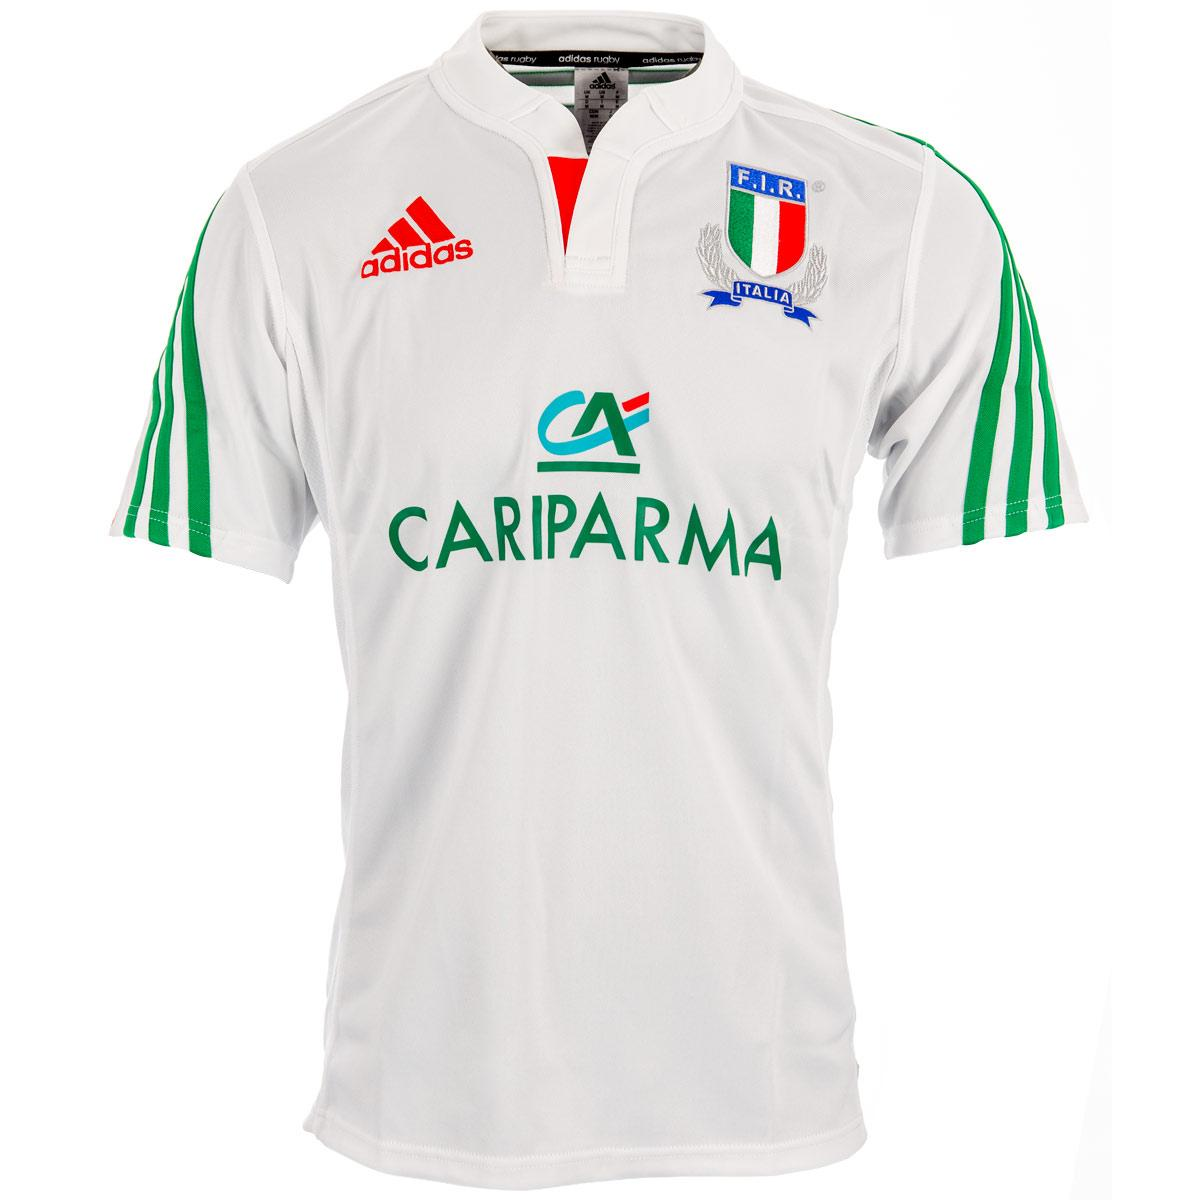 8d8bbe0afa5 Italy Rugby 2014 Adidas Alternate Shirt – Rugby Shirt Watch